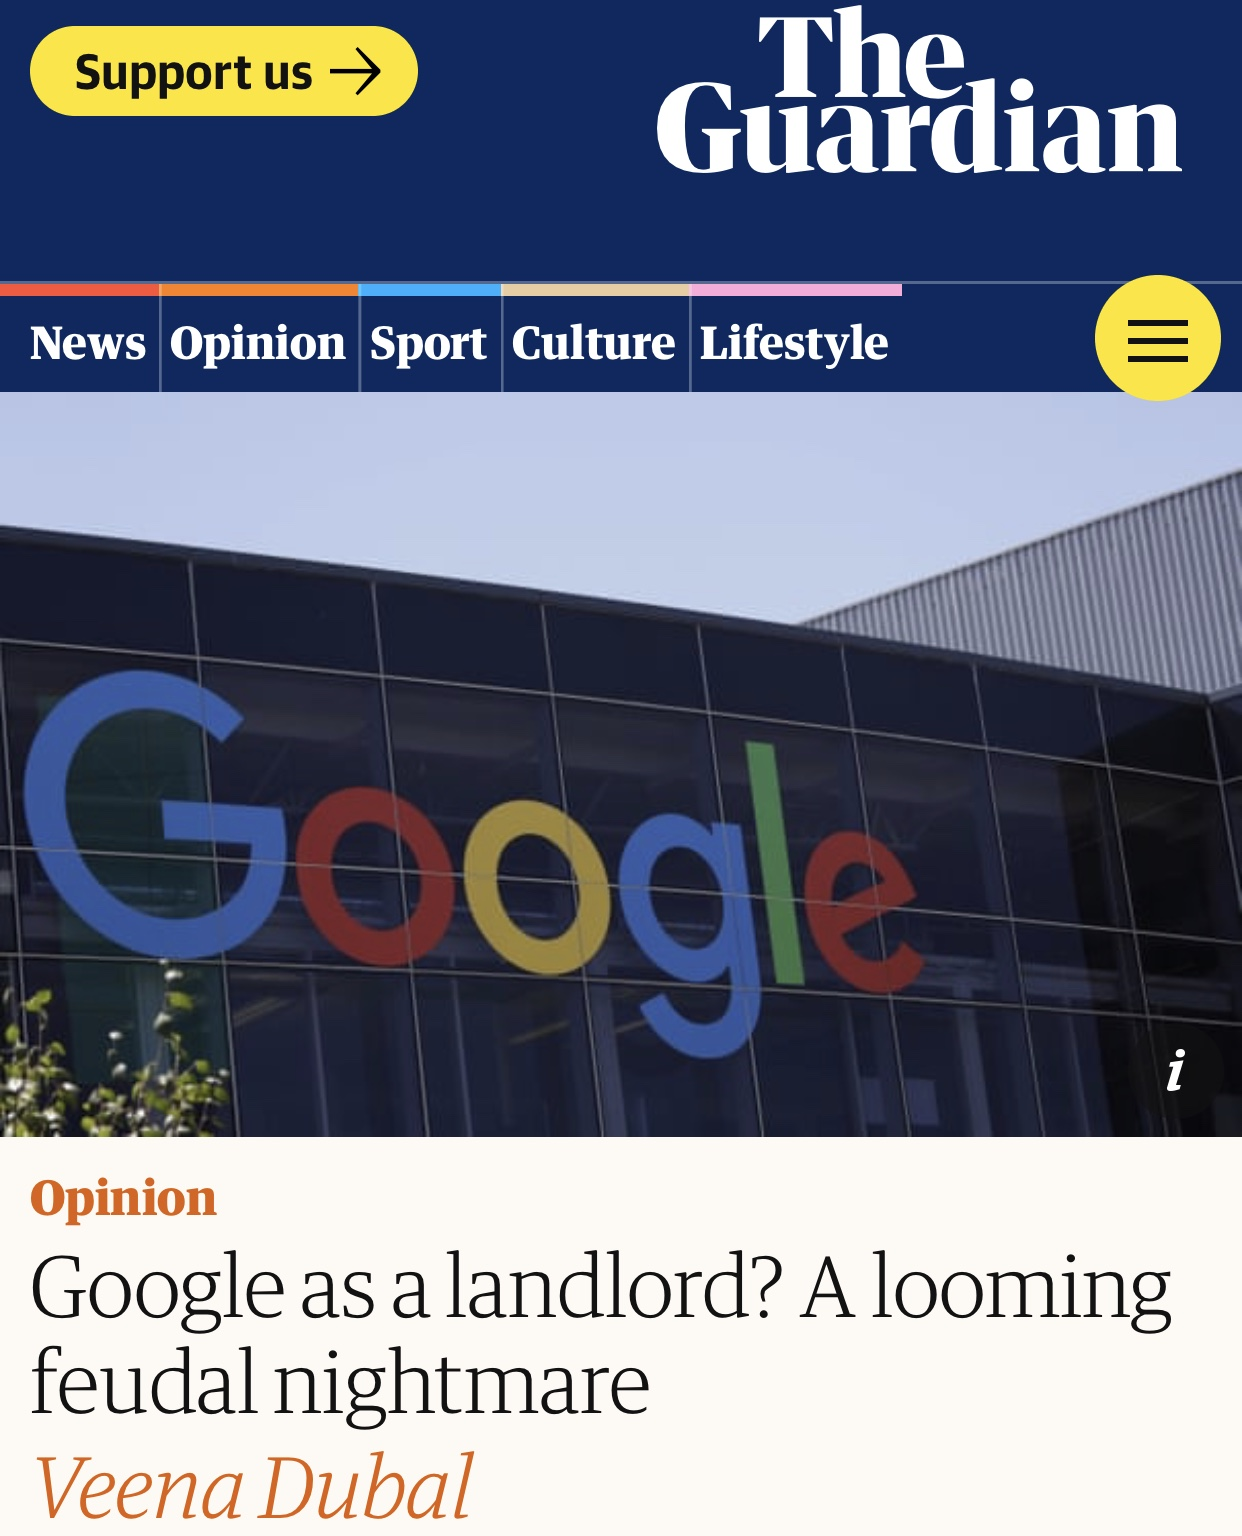 Google as a landlord? A looming feudal nightmare | Google | The Guardian